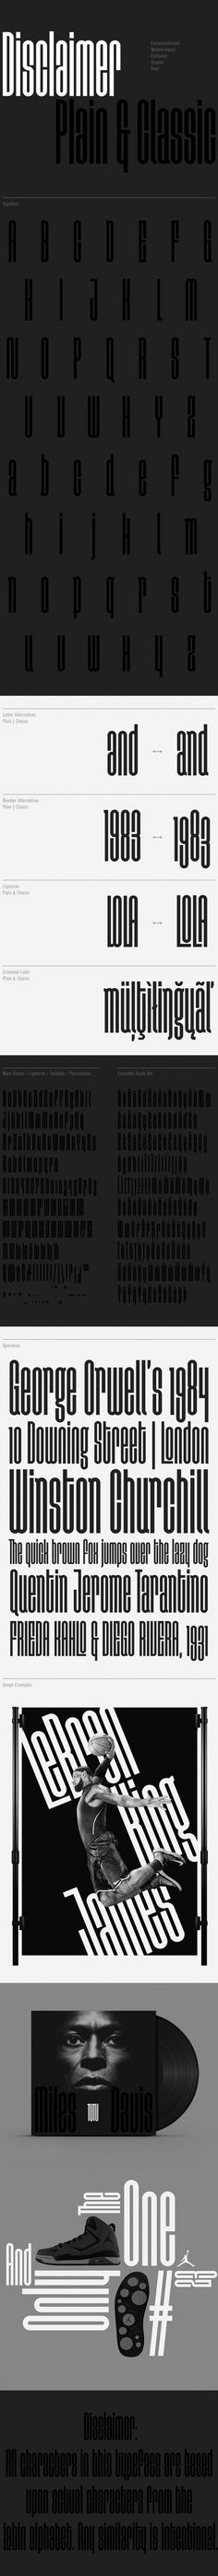 Disclaimer free font on Behance